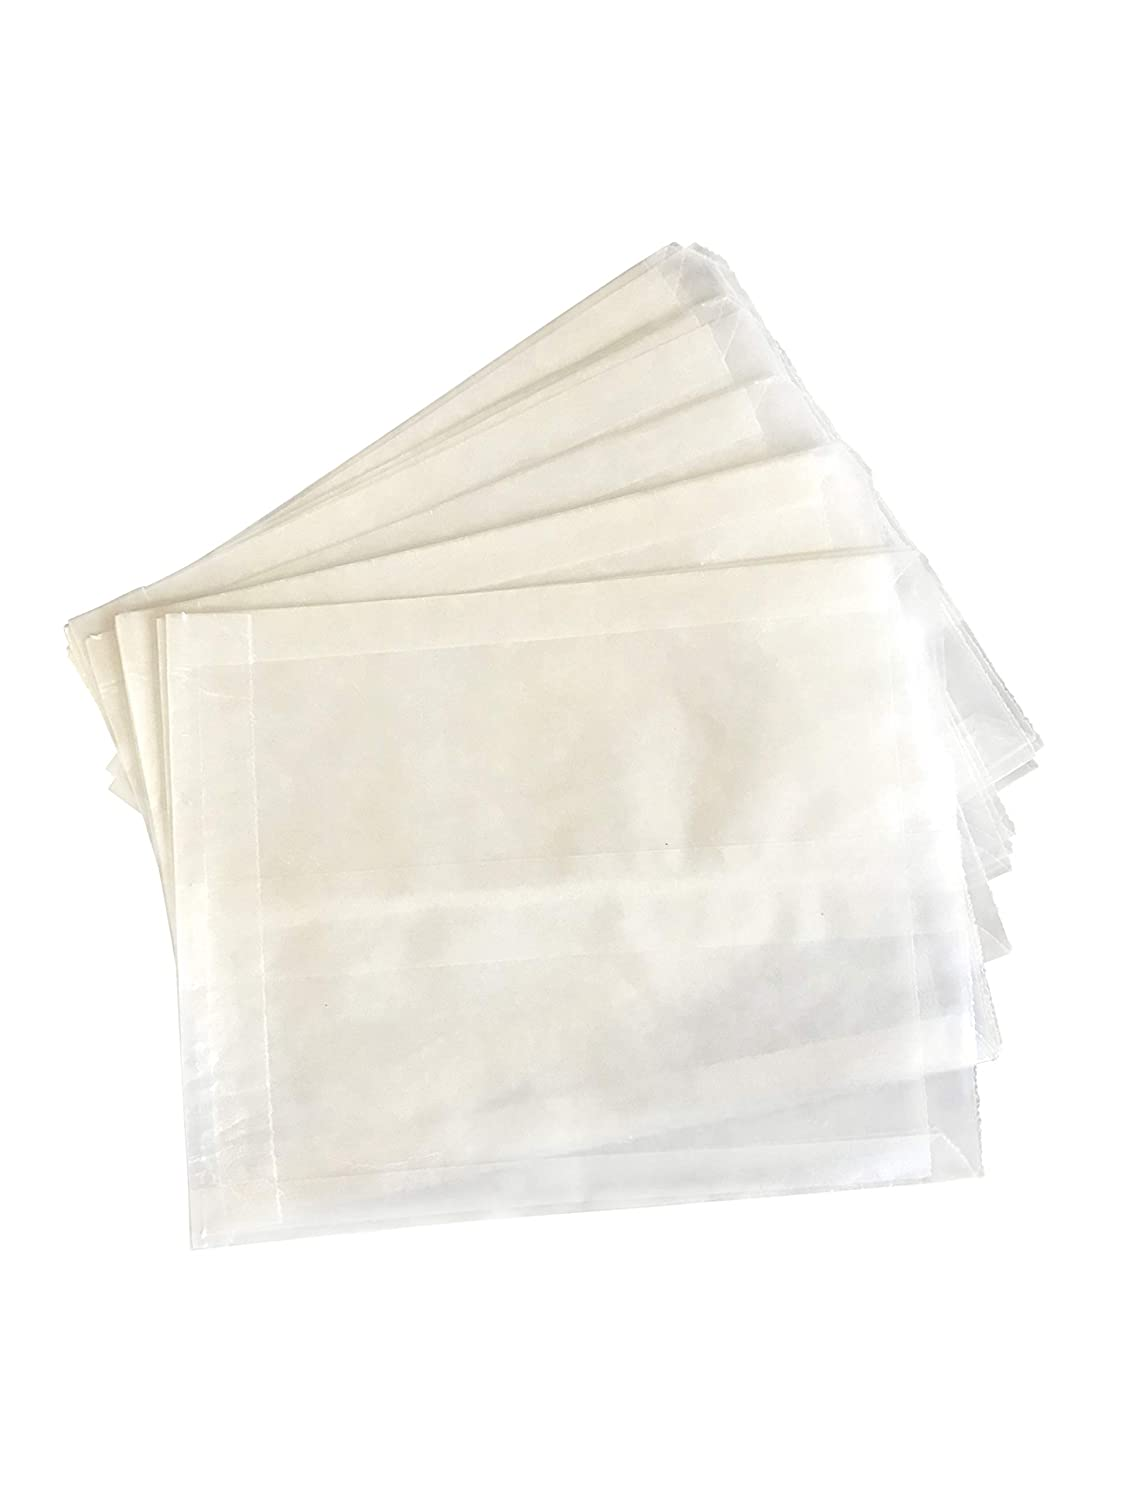 Plain Wet Wax Sandwich Bags – Food Grade Grease Resistant White Paper Bags for Sandwiches Snacks Baked Goods Crafts Cookies – Made in USA (Pack of 100)